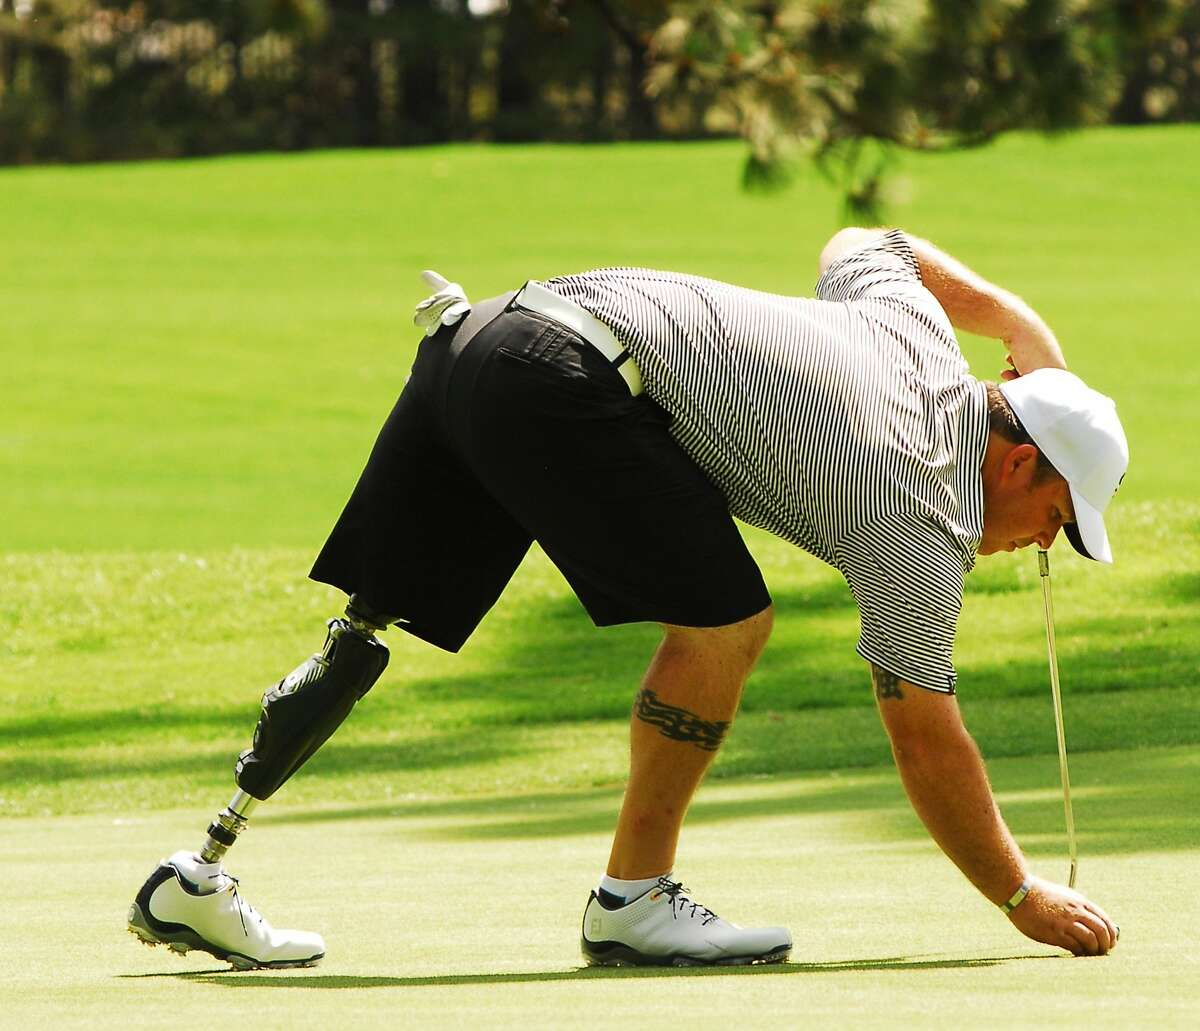 Chad Pfeifer places his ball for a putt in the Lake Tahoe Celebrity-Am on July 15, 2014 in Stateline, Nevada.